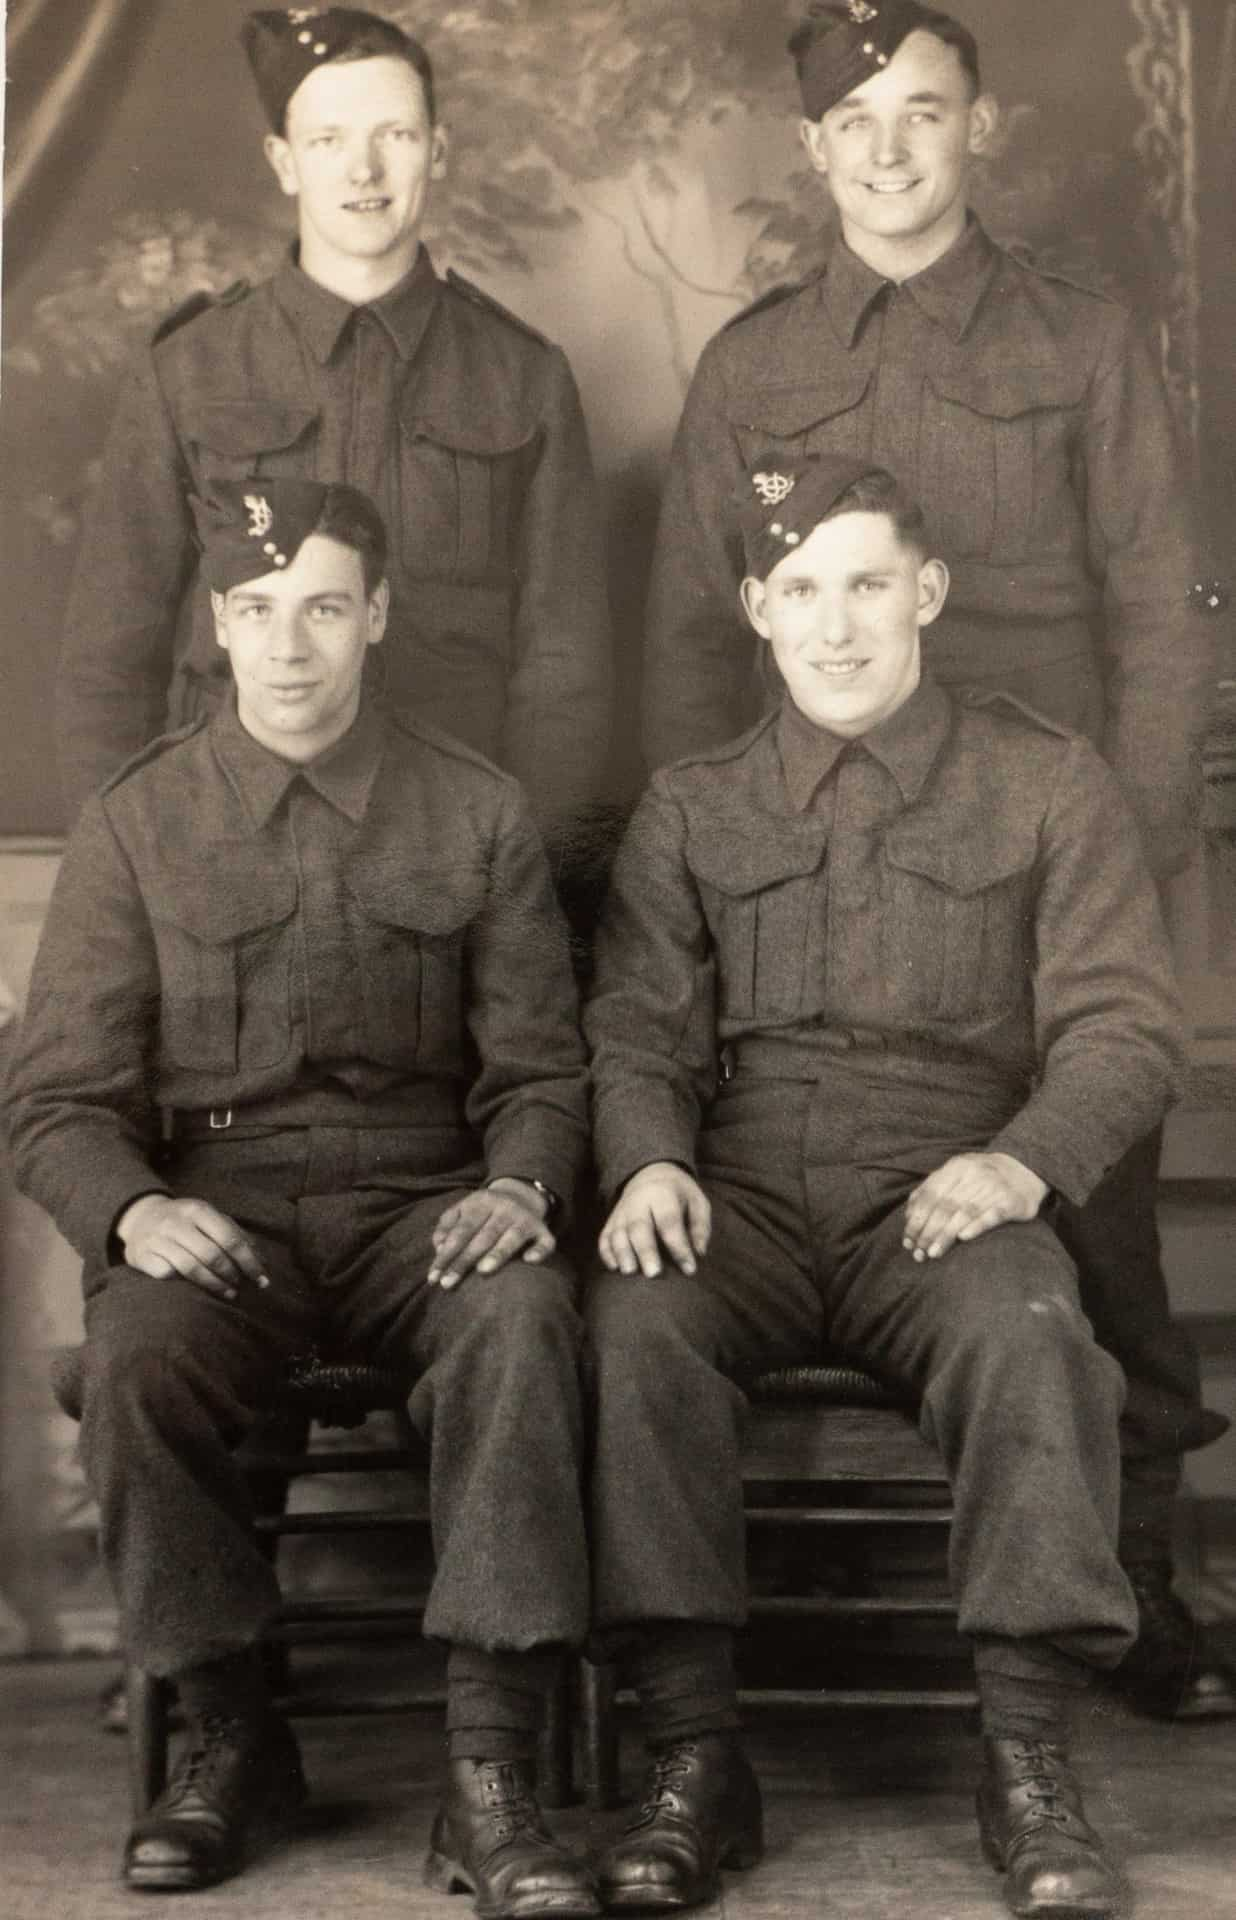 Borden, Hampshire. Left to right, clockwise: William Poulton - escaped at Dunkirk; Sammy Simmons: captured in Belgium 1940; Jim Smith: ecscaped at Dunkirk; Harvey Woodhouse: Caputred in Belgium 1940.